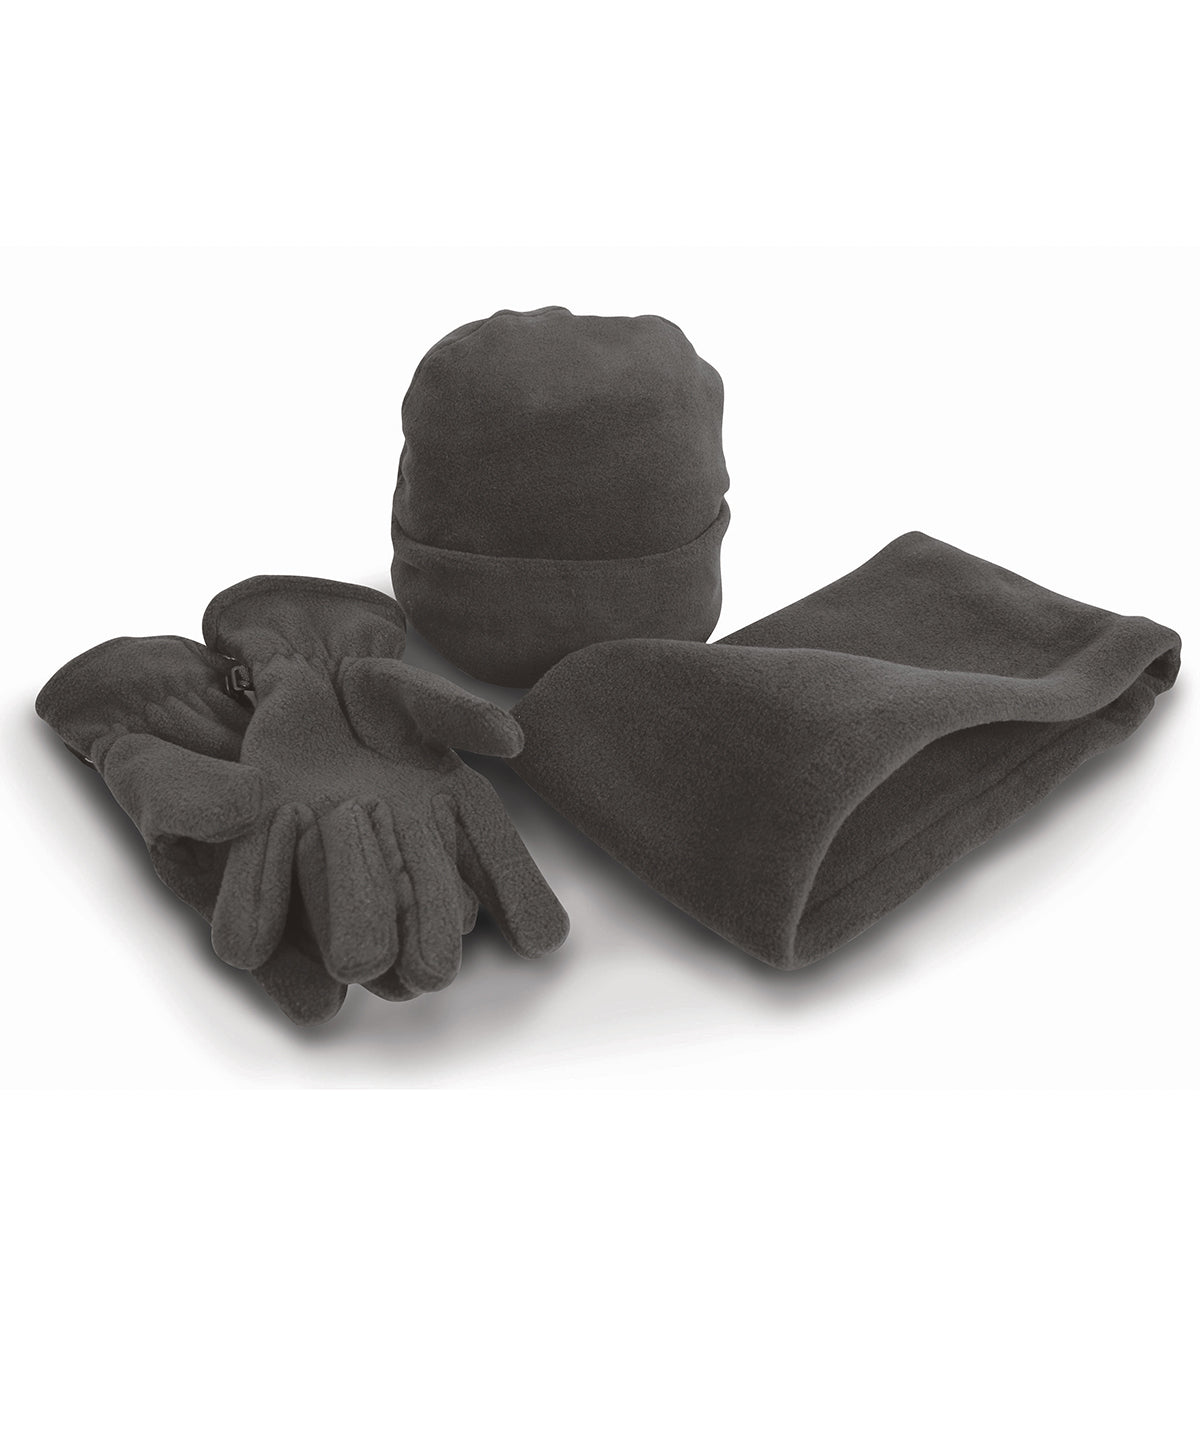 Polartherm™ Fleece Accessory Set: Charcoal Hat, Gloves & Snood